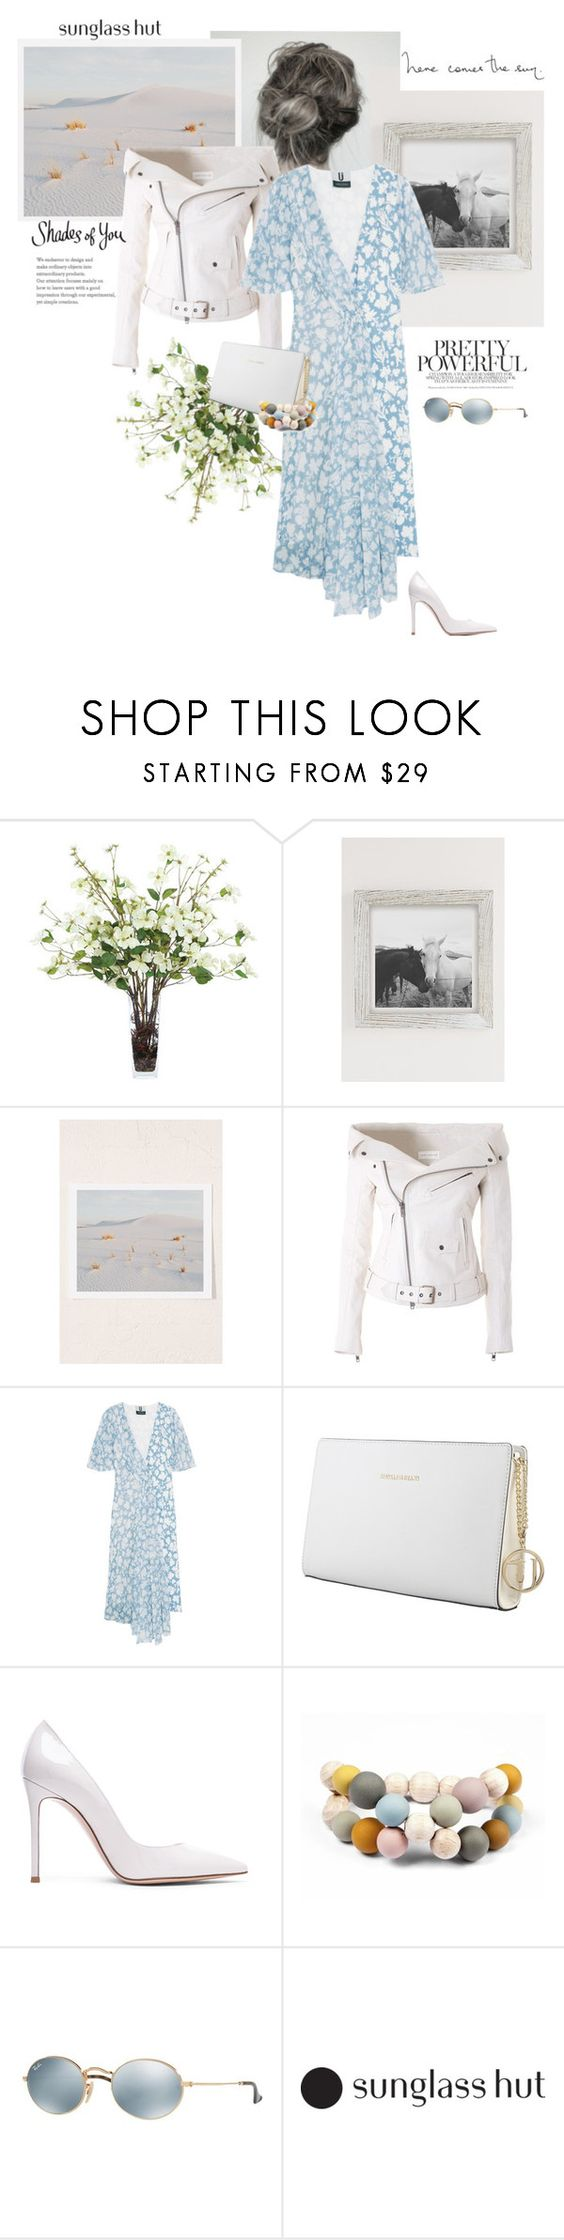 """Pretty Powerful"" by rever-de-paris ❤ liked on Polyvore featuring Lux-Art Silks, Urban Outfitters, Faith Connexion, Topshop Unique, Trussardi, Gianvito Rossi, Hring eftir hring and Ray-Ban"